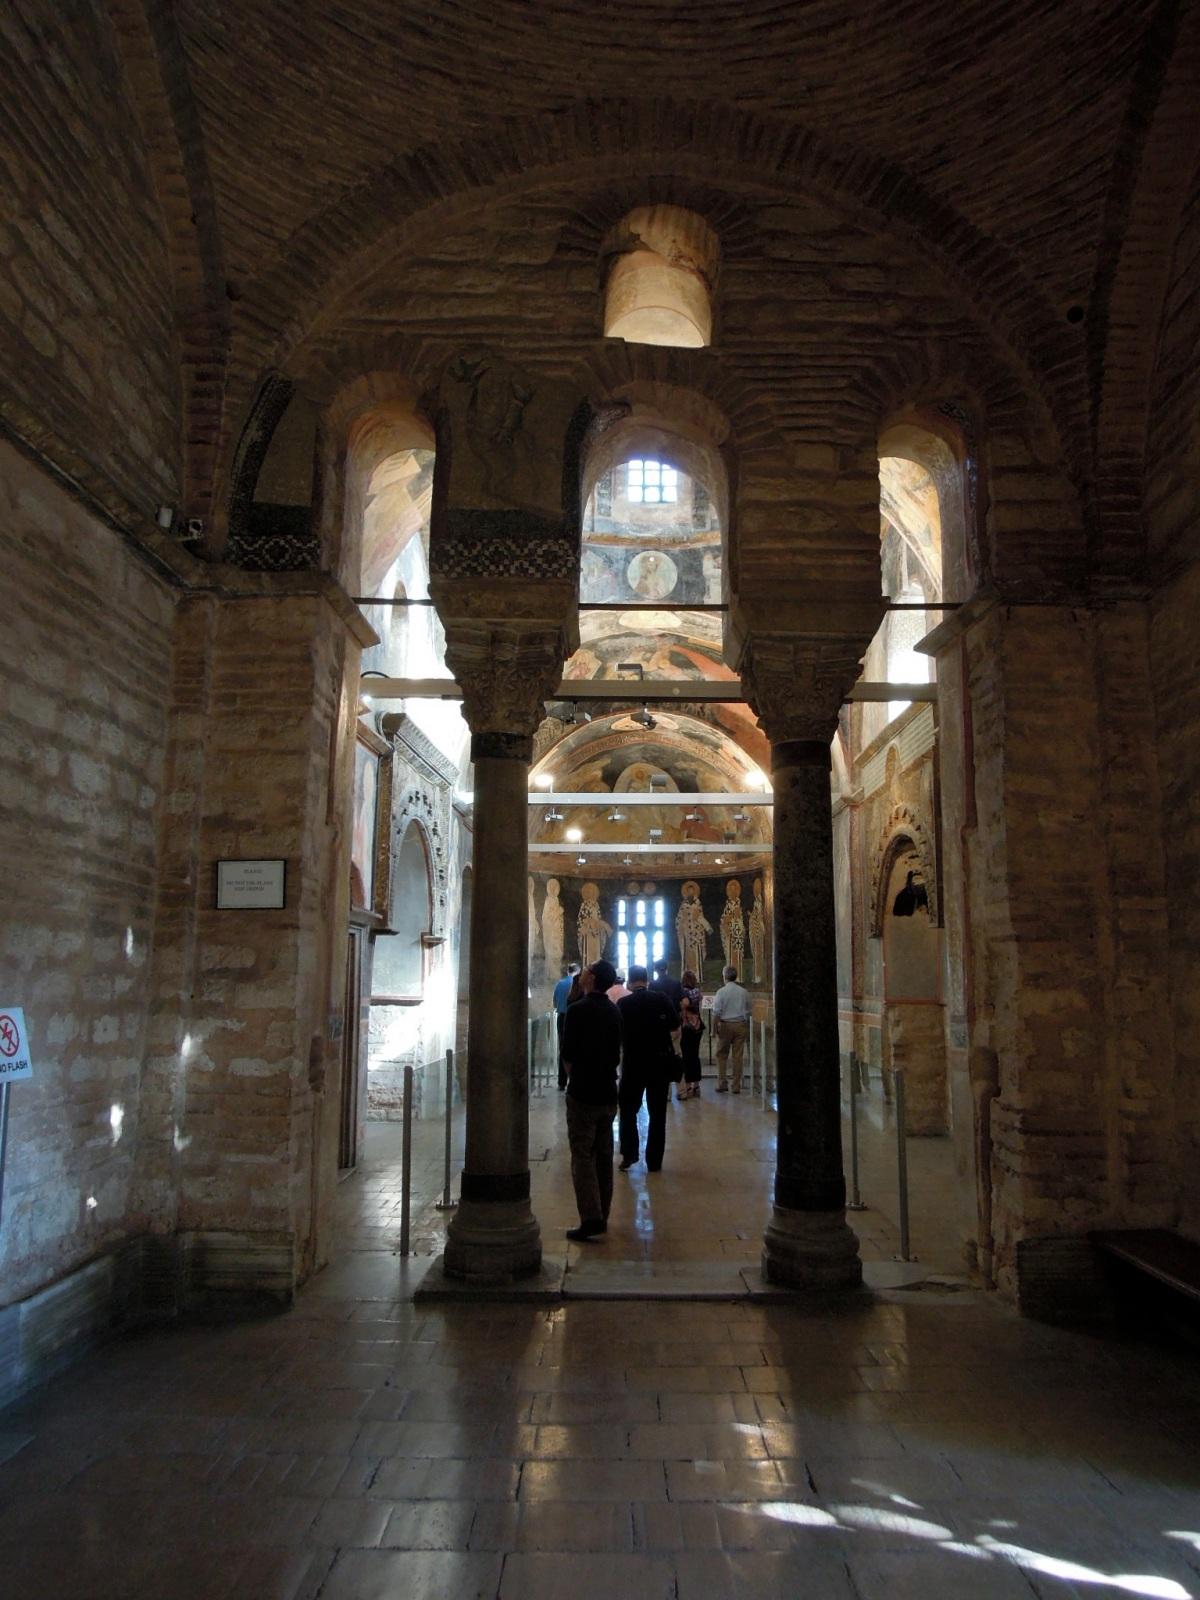 Through the right-hand door, upon entering the museum